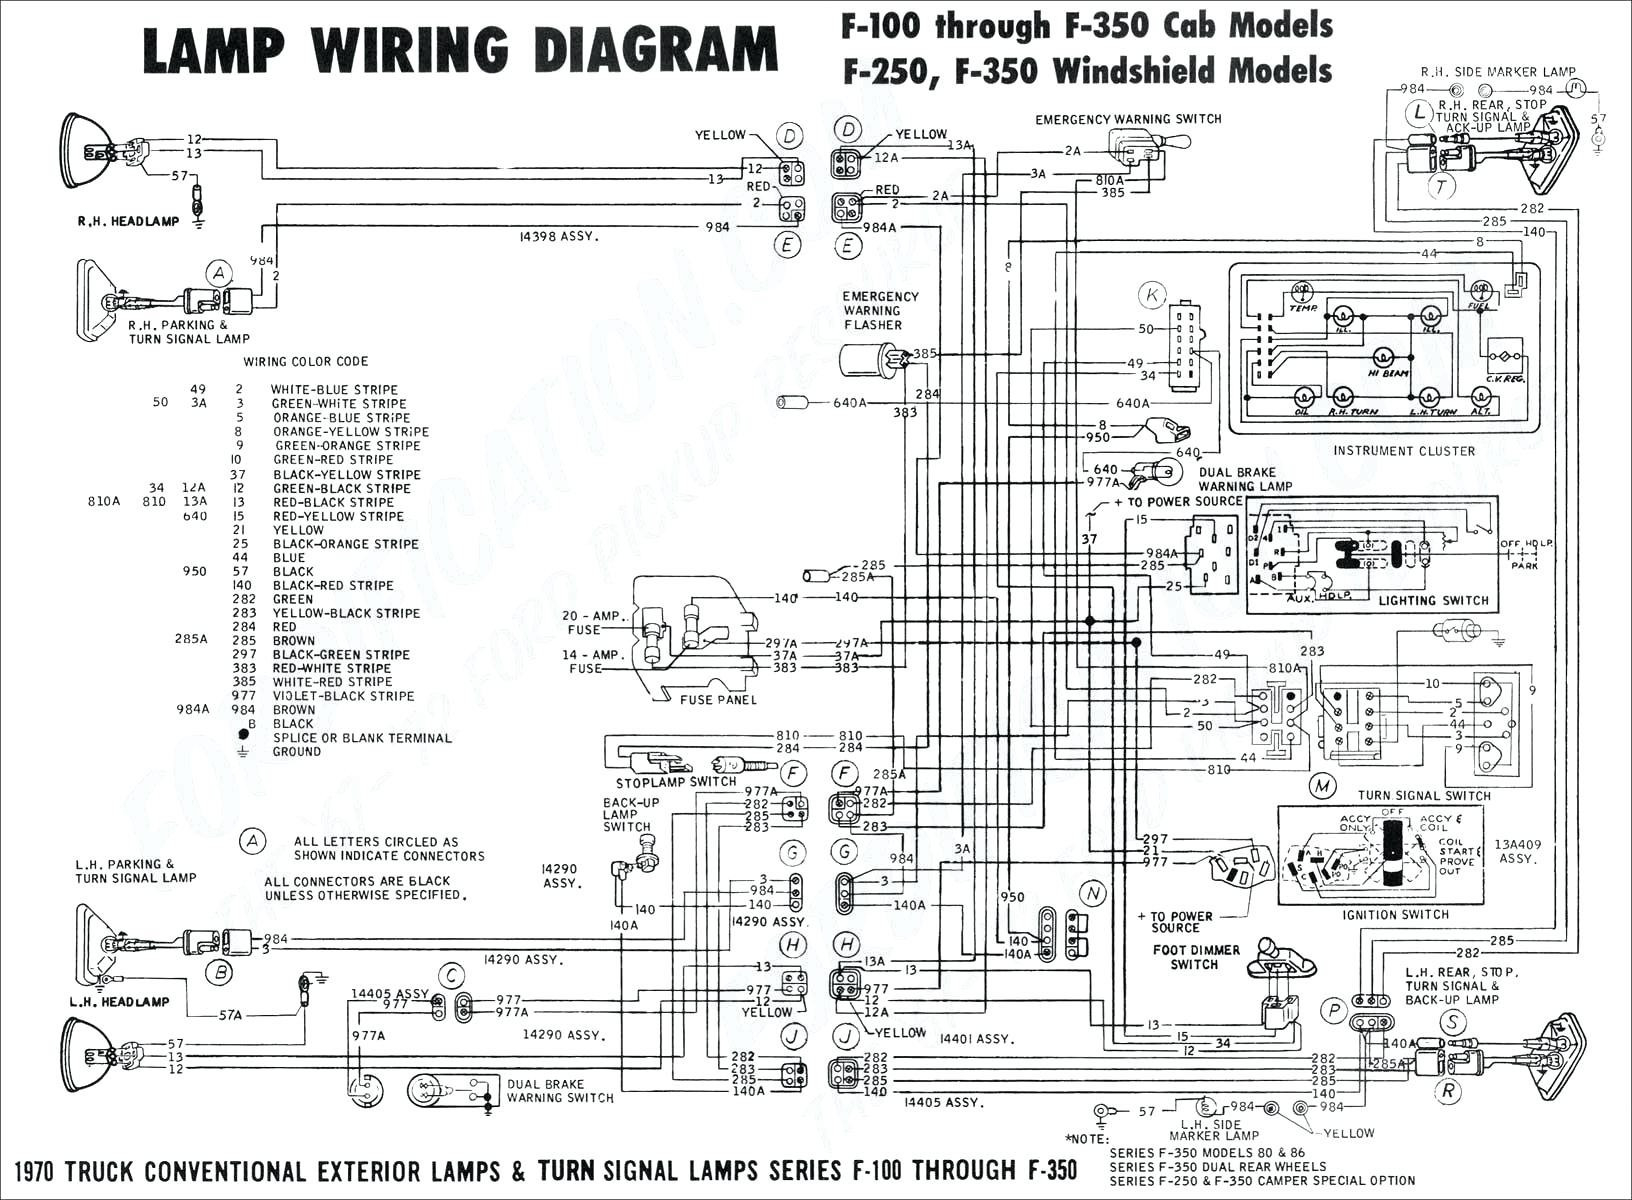 fusion headlight wiring schematics wiring diagrams u2022 rh marapolsa co 2007 ford fusion headlight wiring diagram 2015 ford fusion headlight wiring diagram